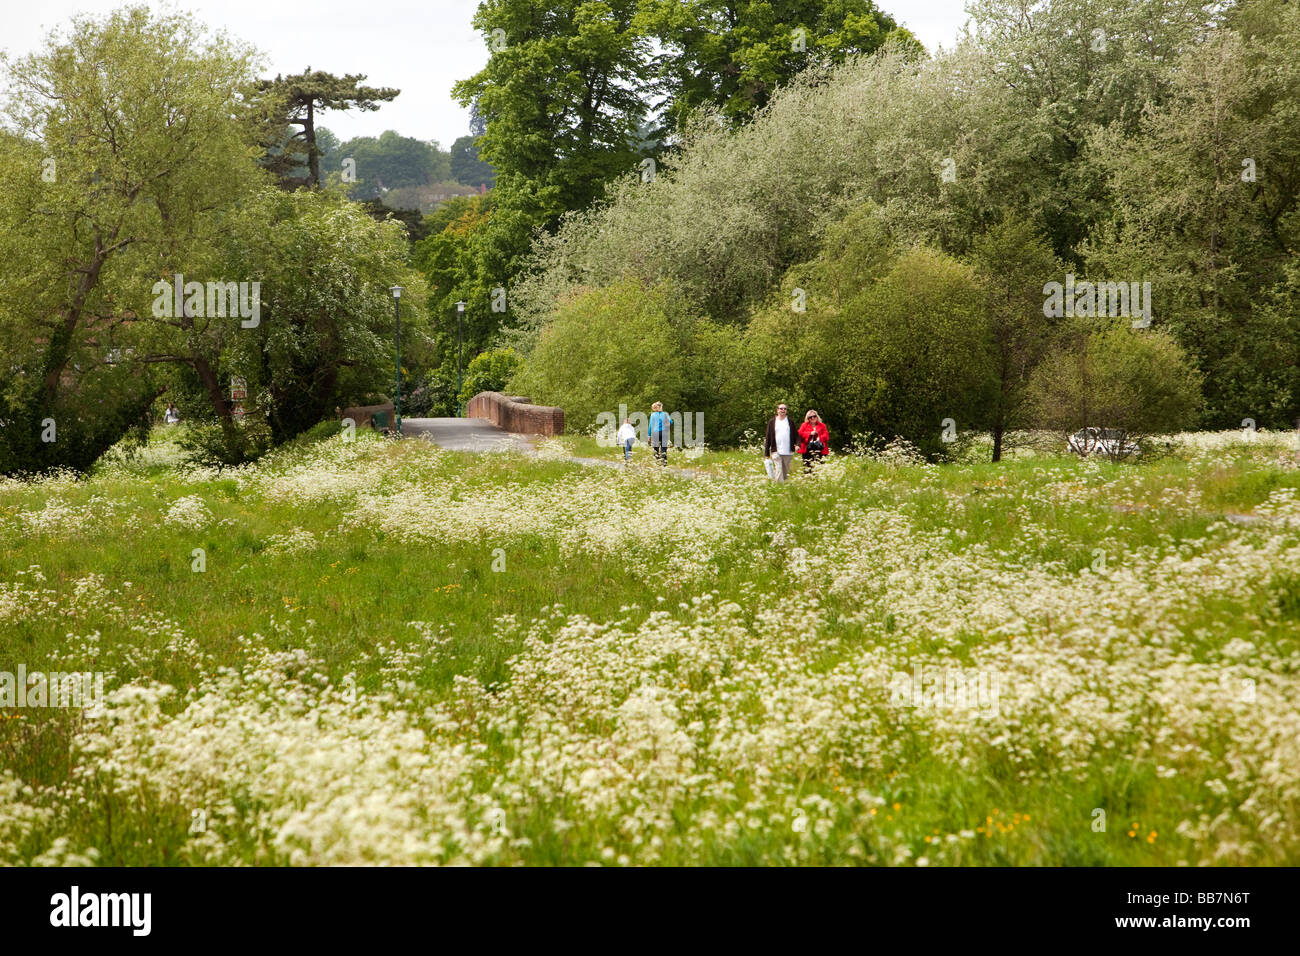 England Berkshire Cookham Moor path through public open space - Stock Image